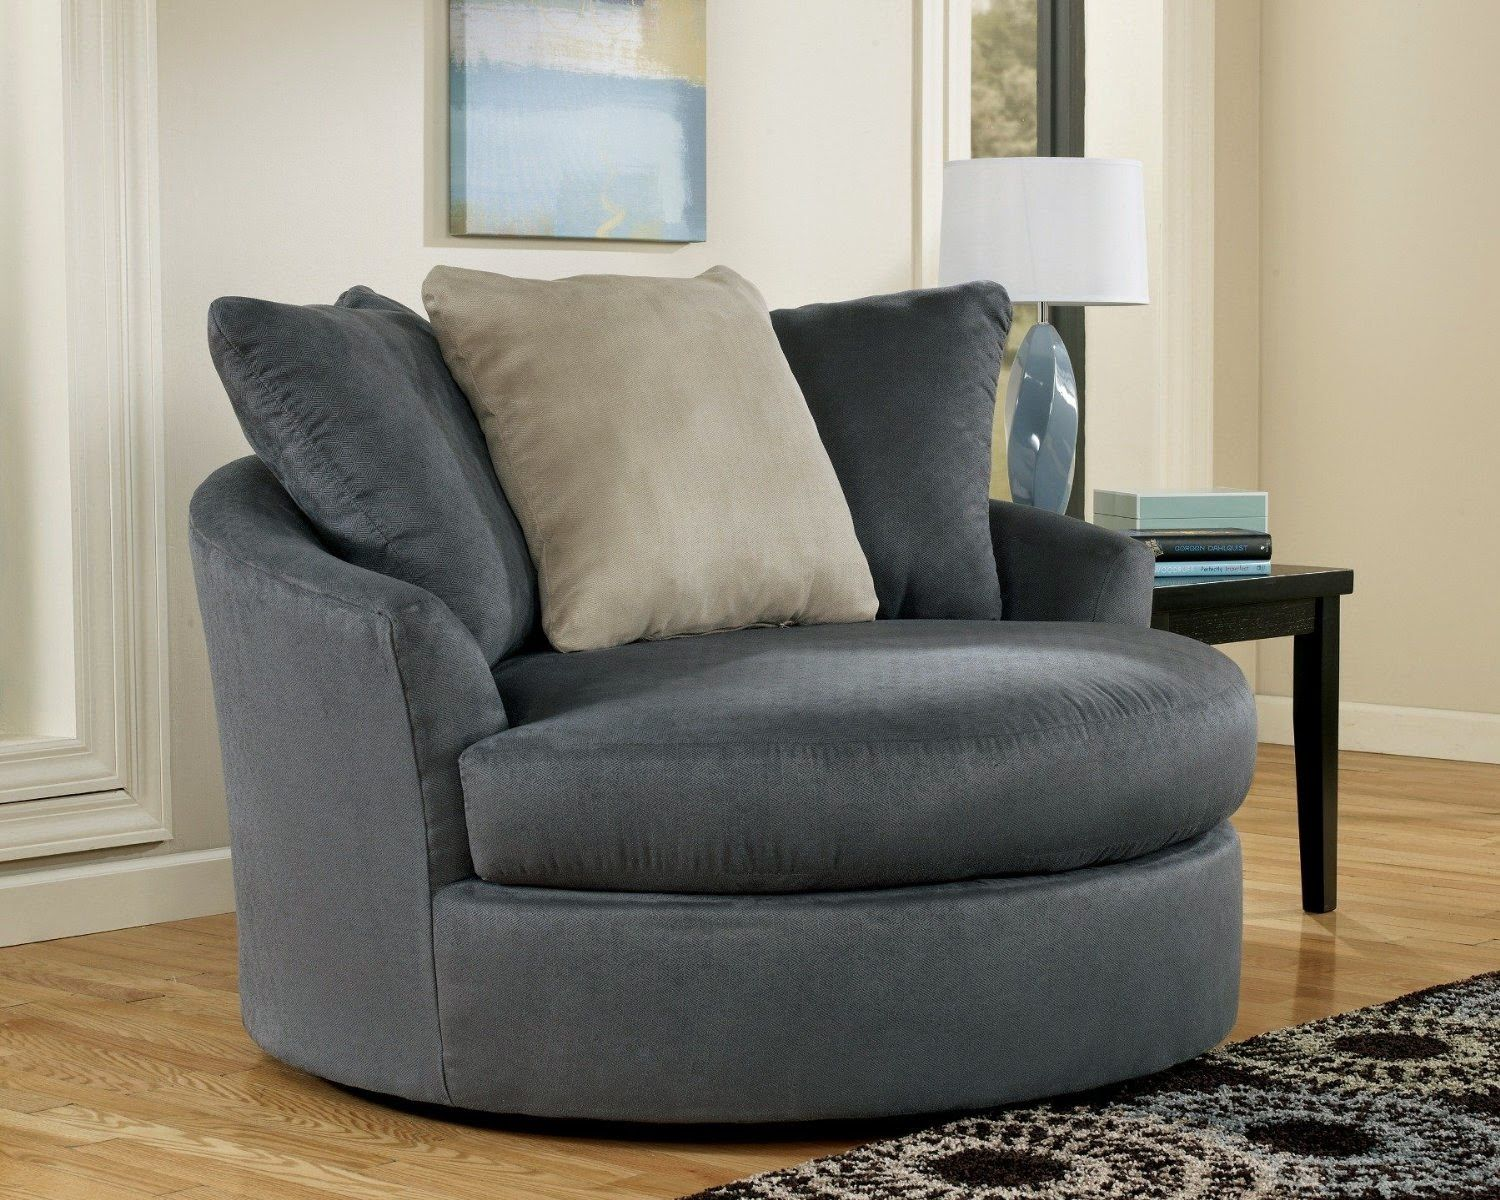 snuggle sofa and swivel chair brown table cuddle couch for sale shopping pinterest